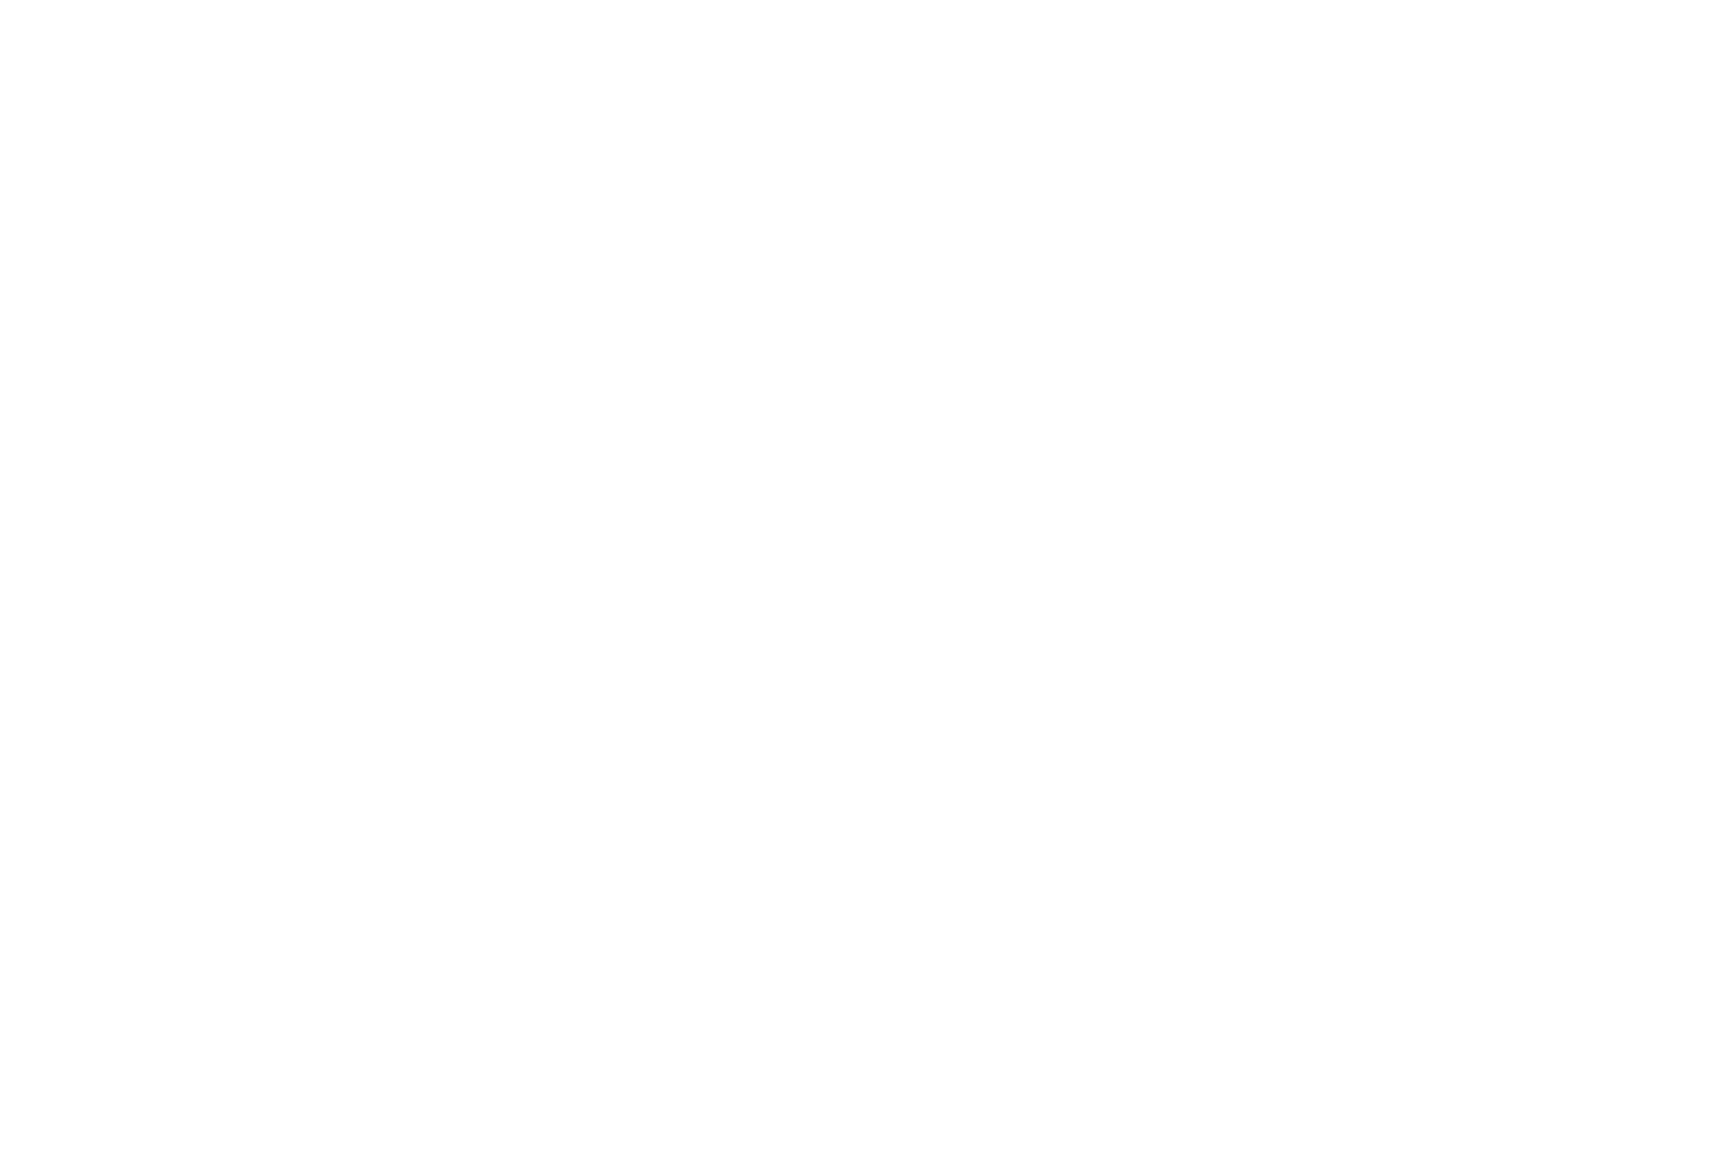 OFFICIAL SELECTION - Damnationland - 2017(1).png